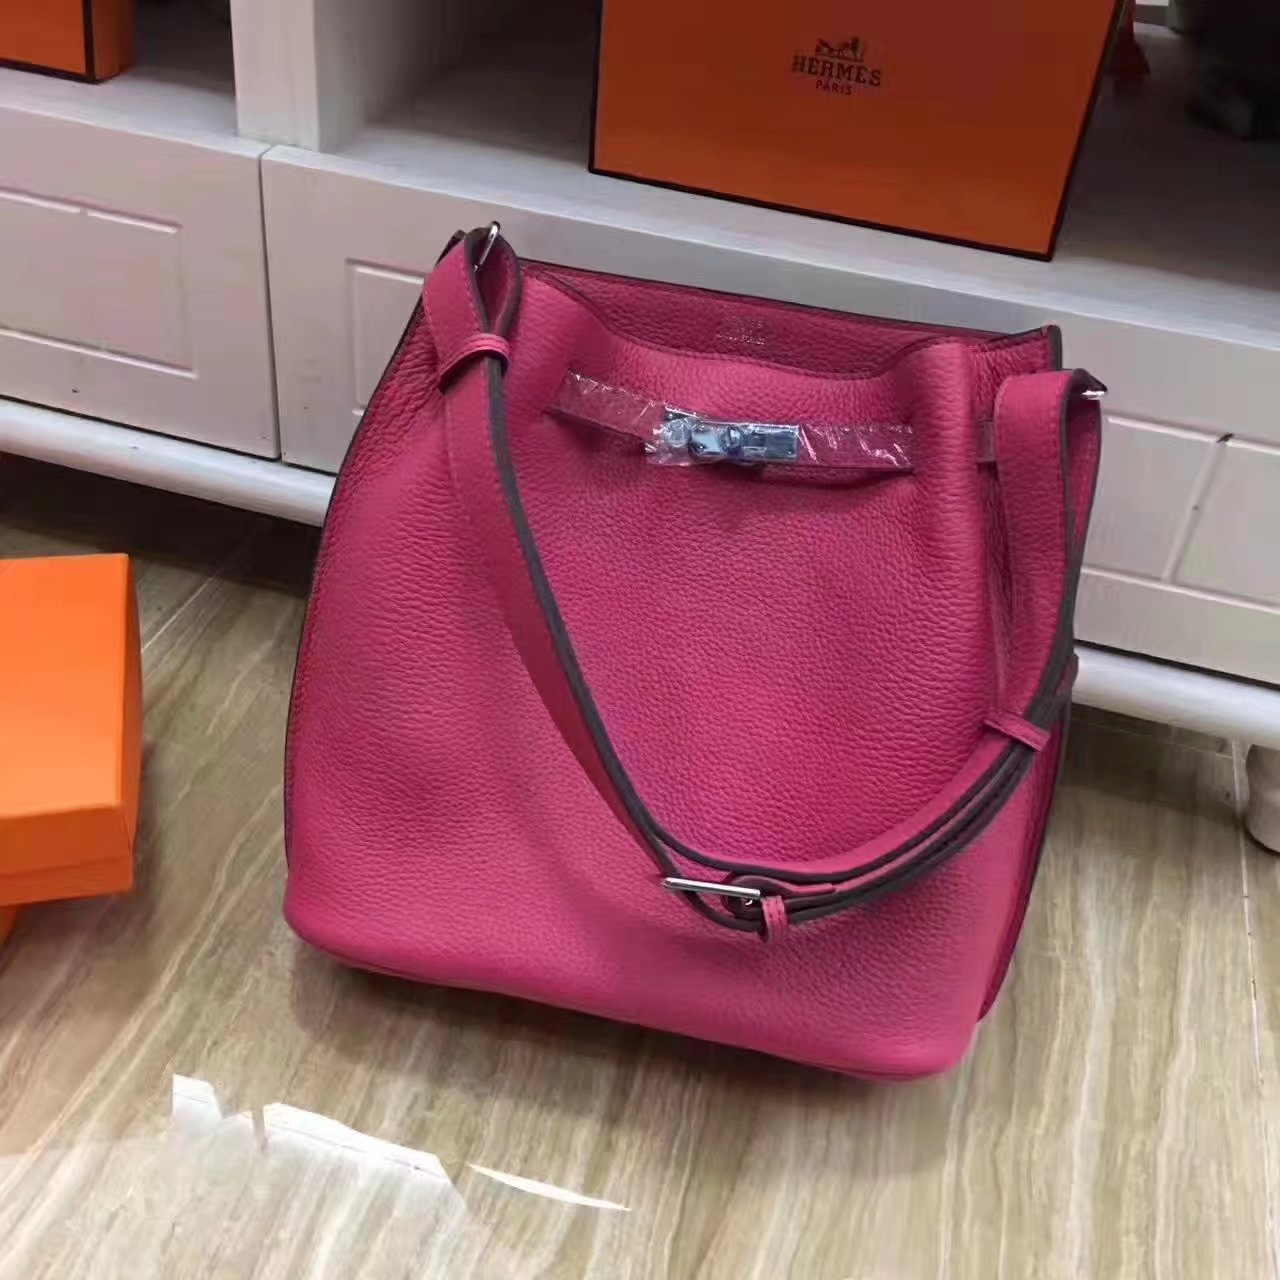 Hermes So Kelly 28cm Leather Shoulder Bag Peach With Silver